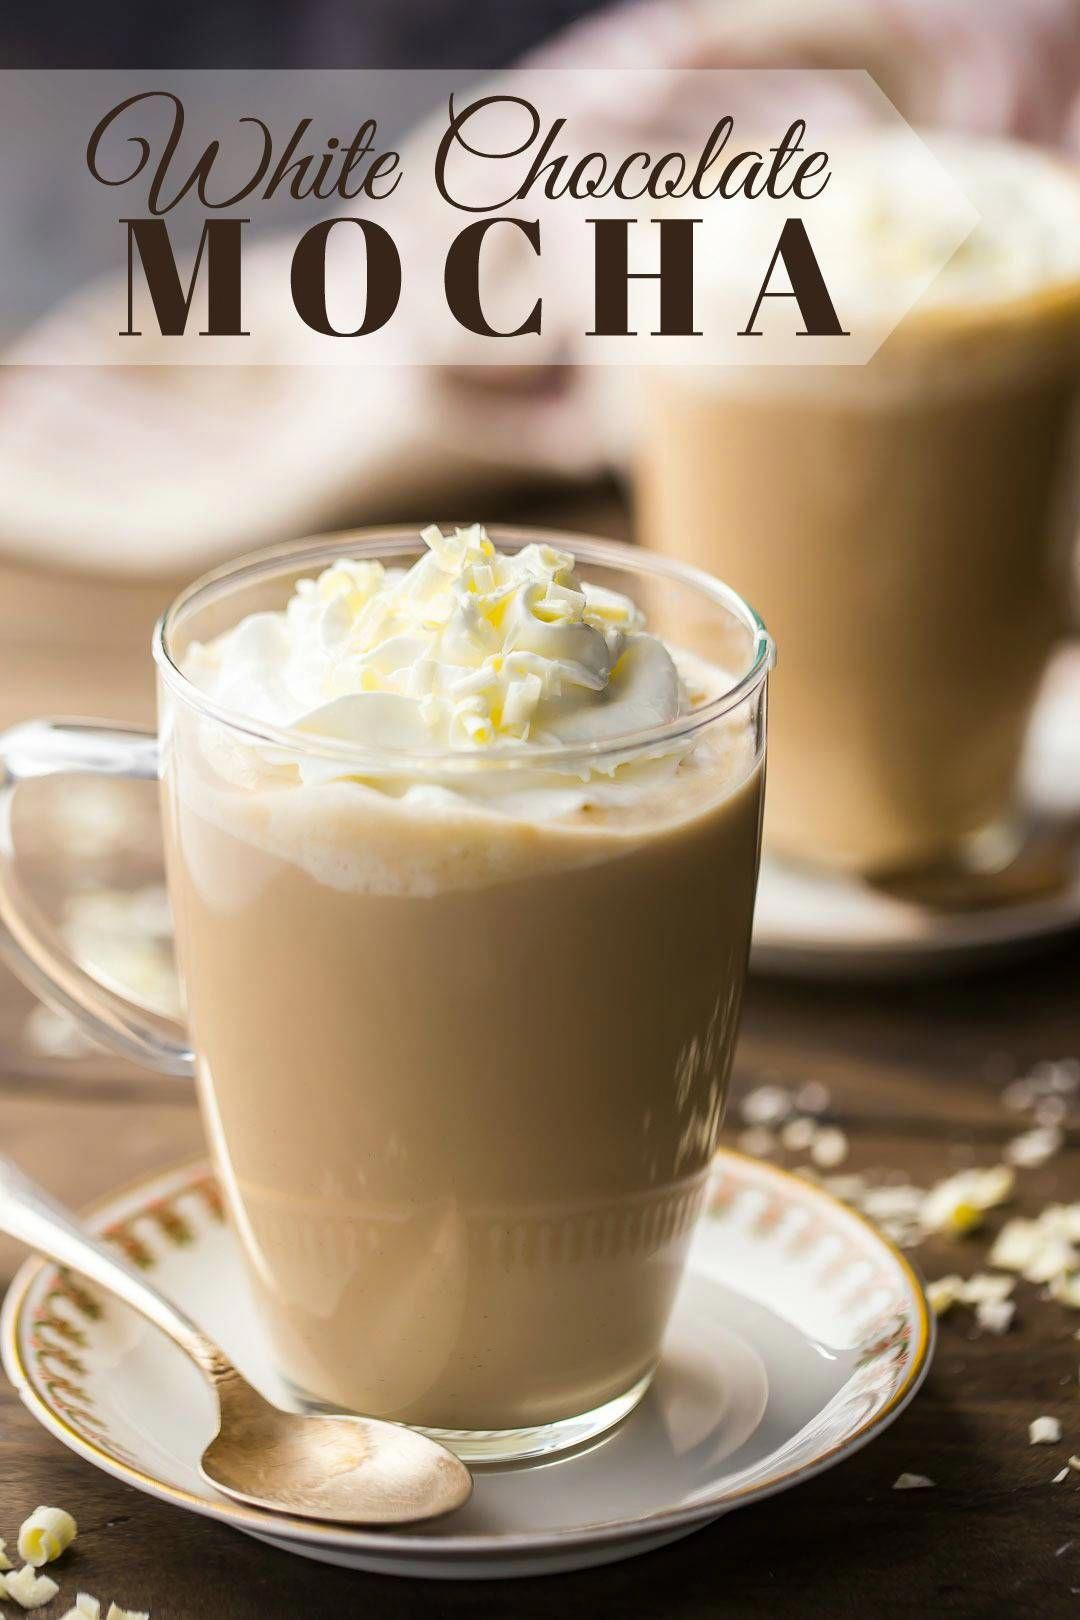 White Chocolate Mocha: such a yummy winter drink! I make this when I want to treat myself. #whitechocolate #mocha #starbucks #recipe #iced #DIY #coffee #frappuccino #keurig #hot #espresso #homemade #latte #howtomake #frappe #desserts #whippedcream #drinks #glutenfree #treats #food #sweets #milk #mornings #baking #christmas #winter #bakingamoment